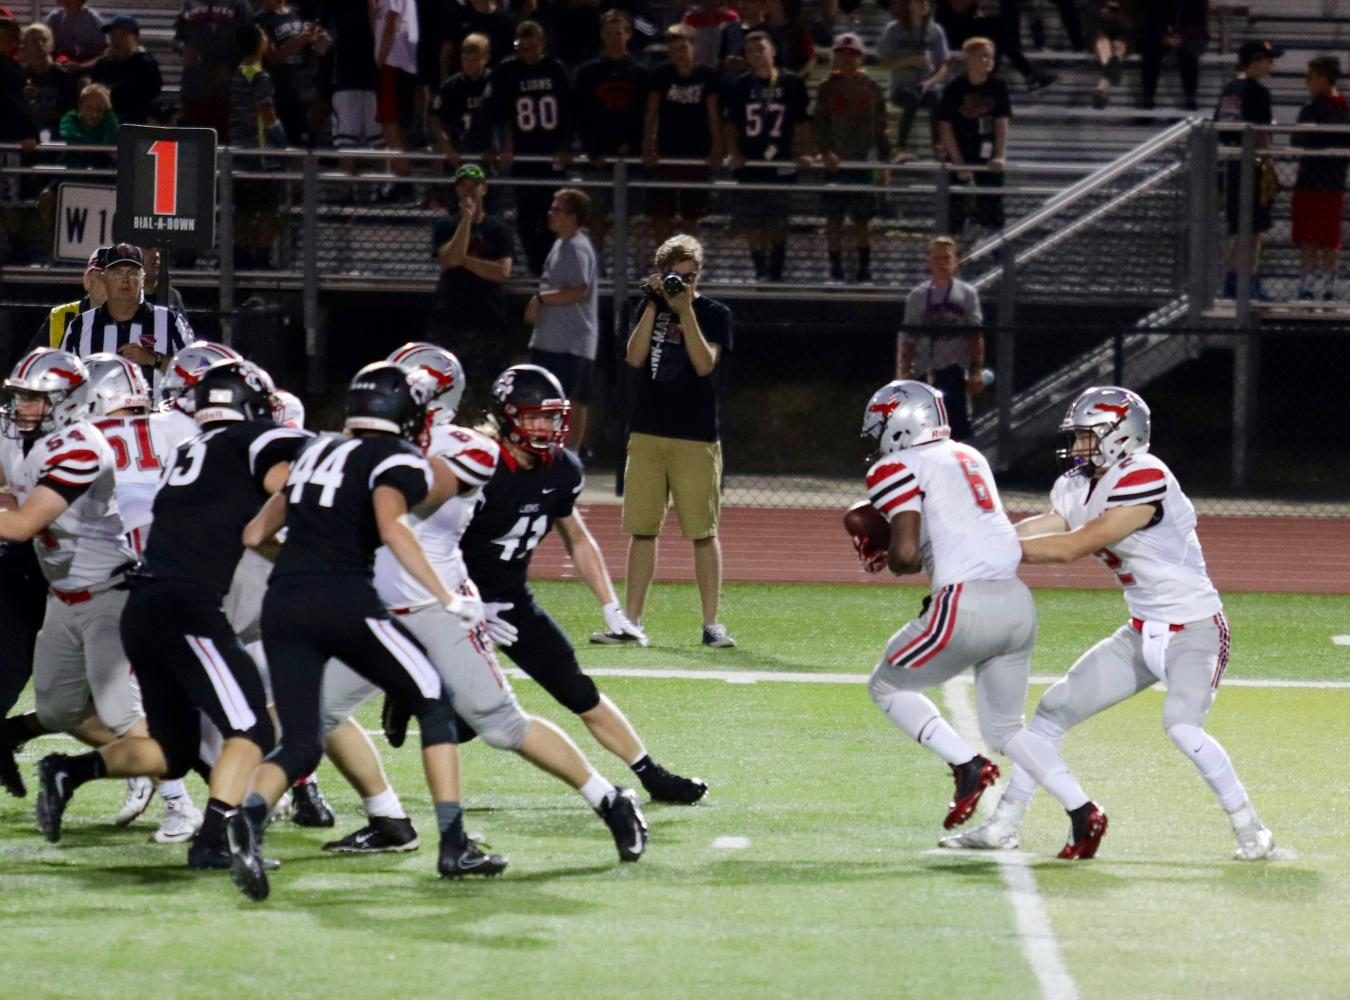 Bryce Hunger 18 hands the ball off to teammate Devontae Foster 18.